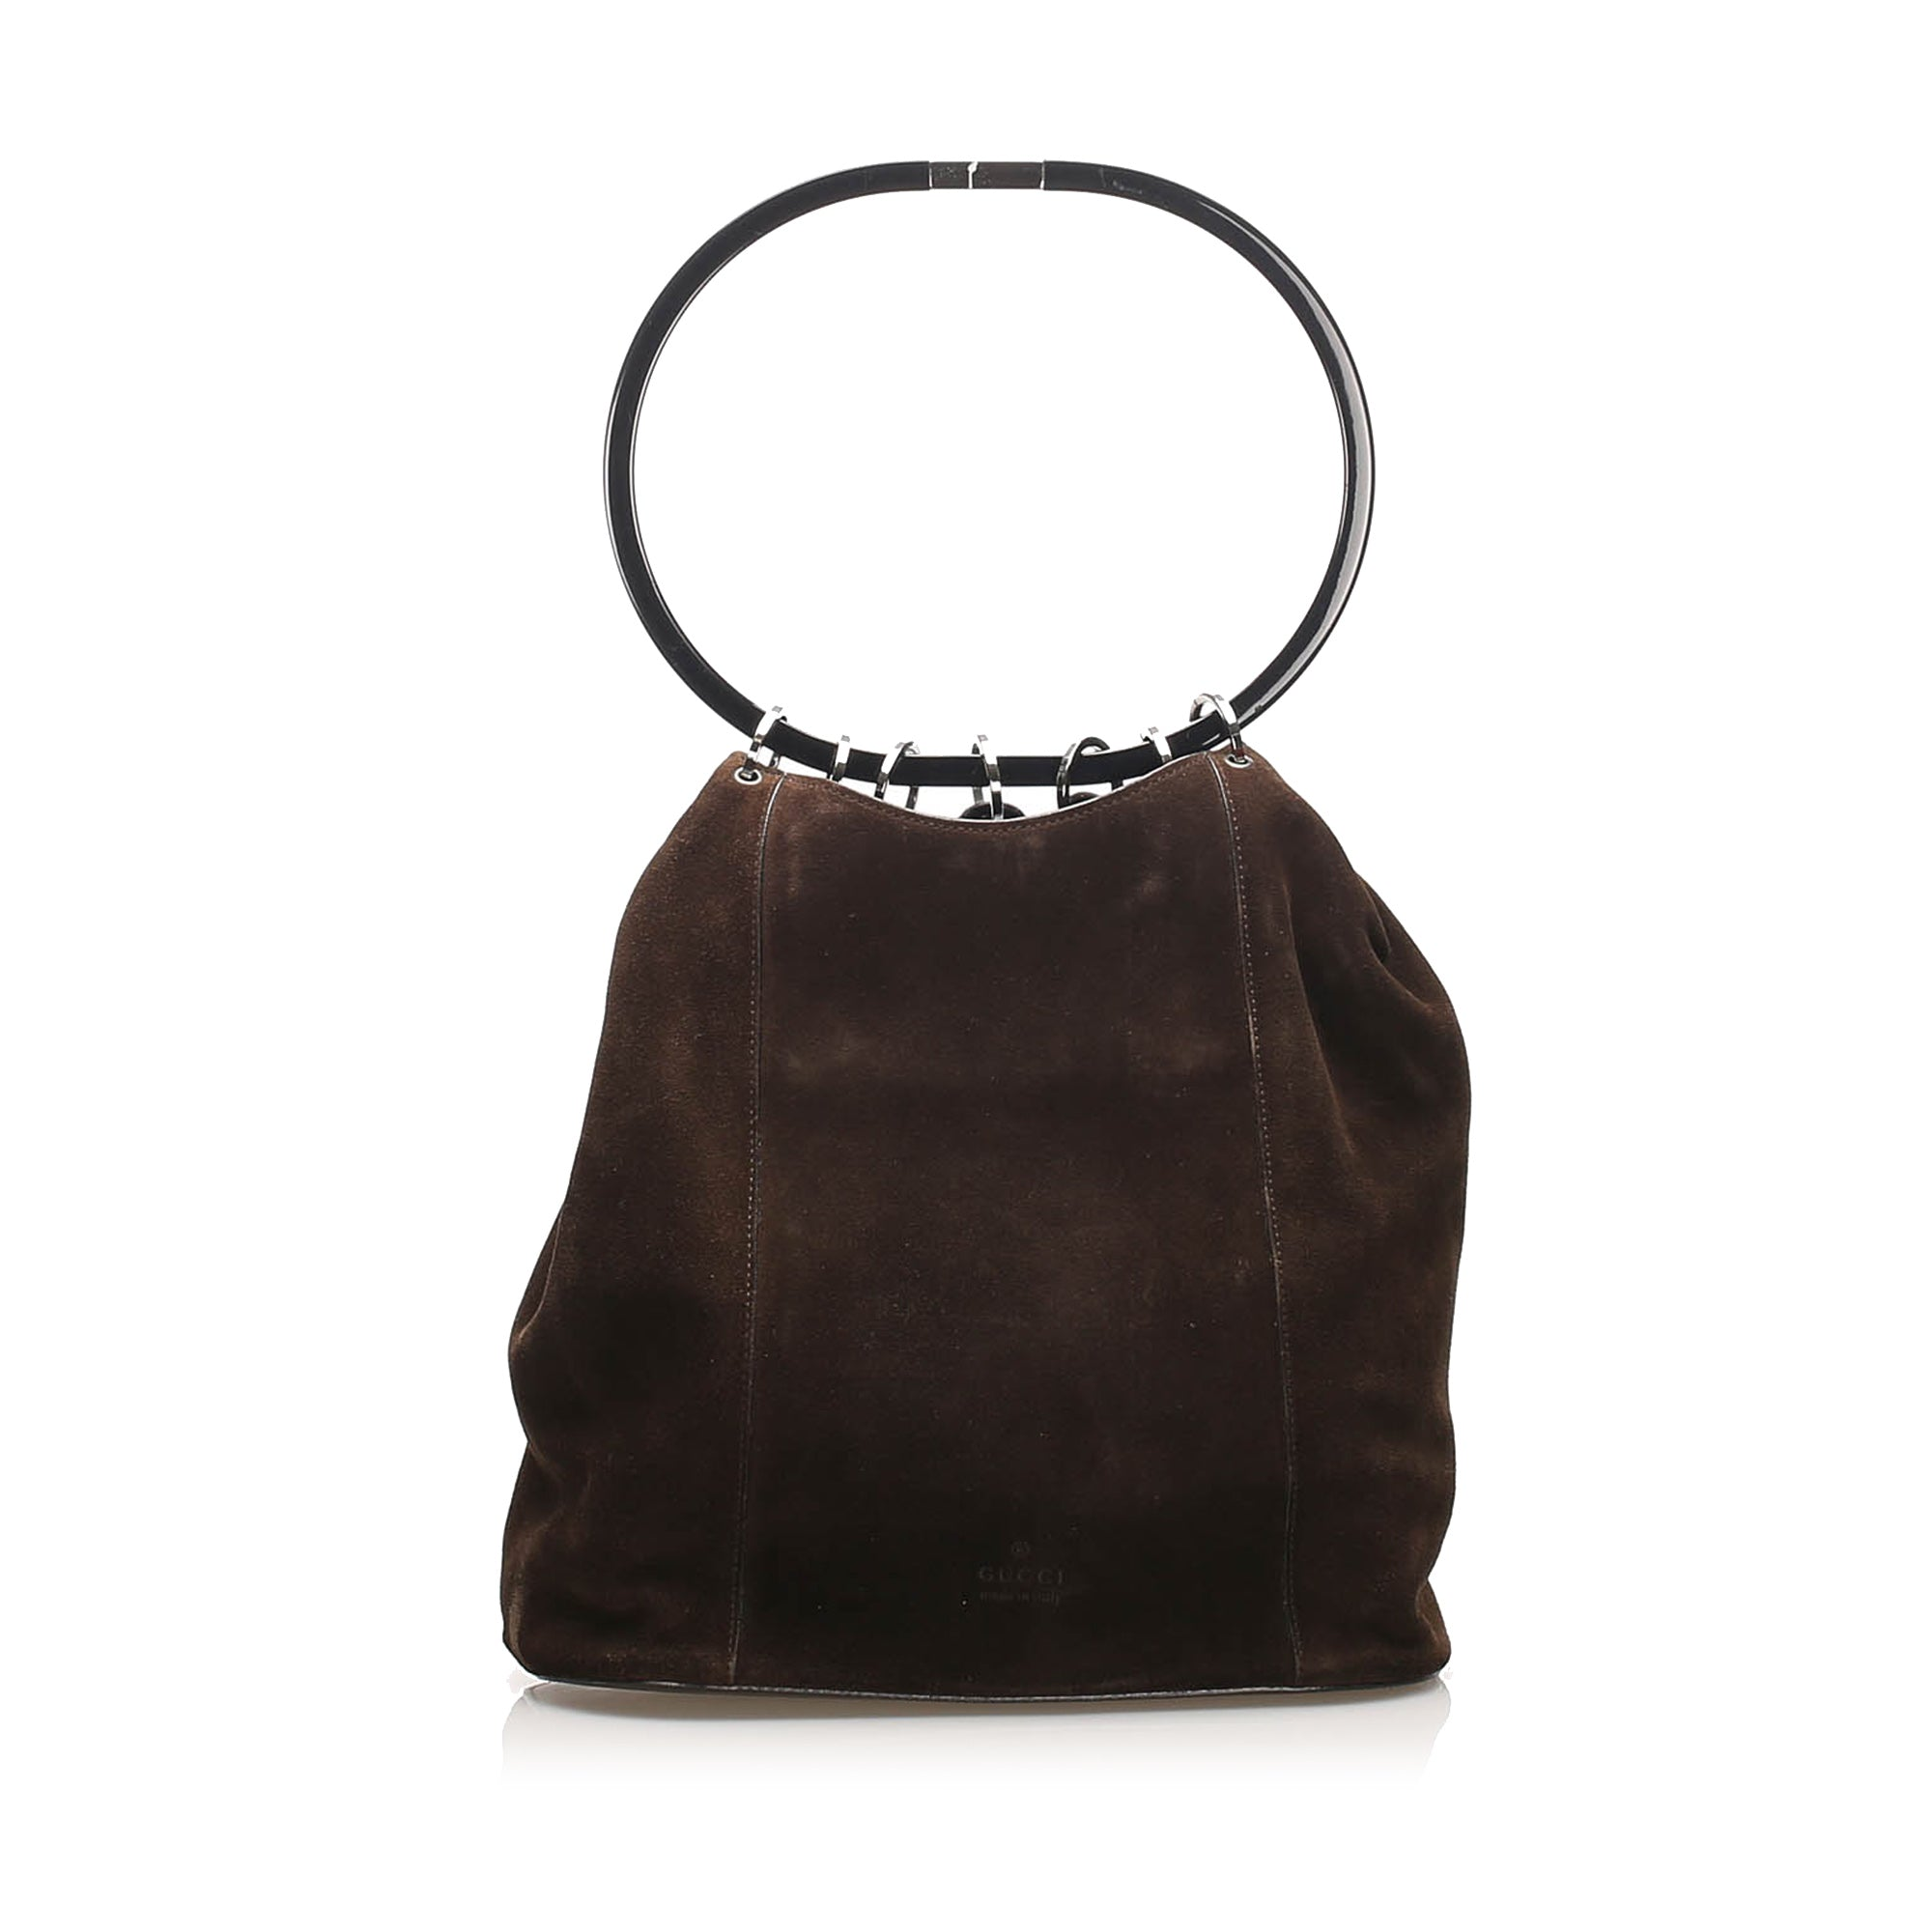 Gucci Brown Ring Handle Suede Handbag